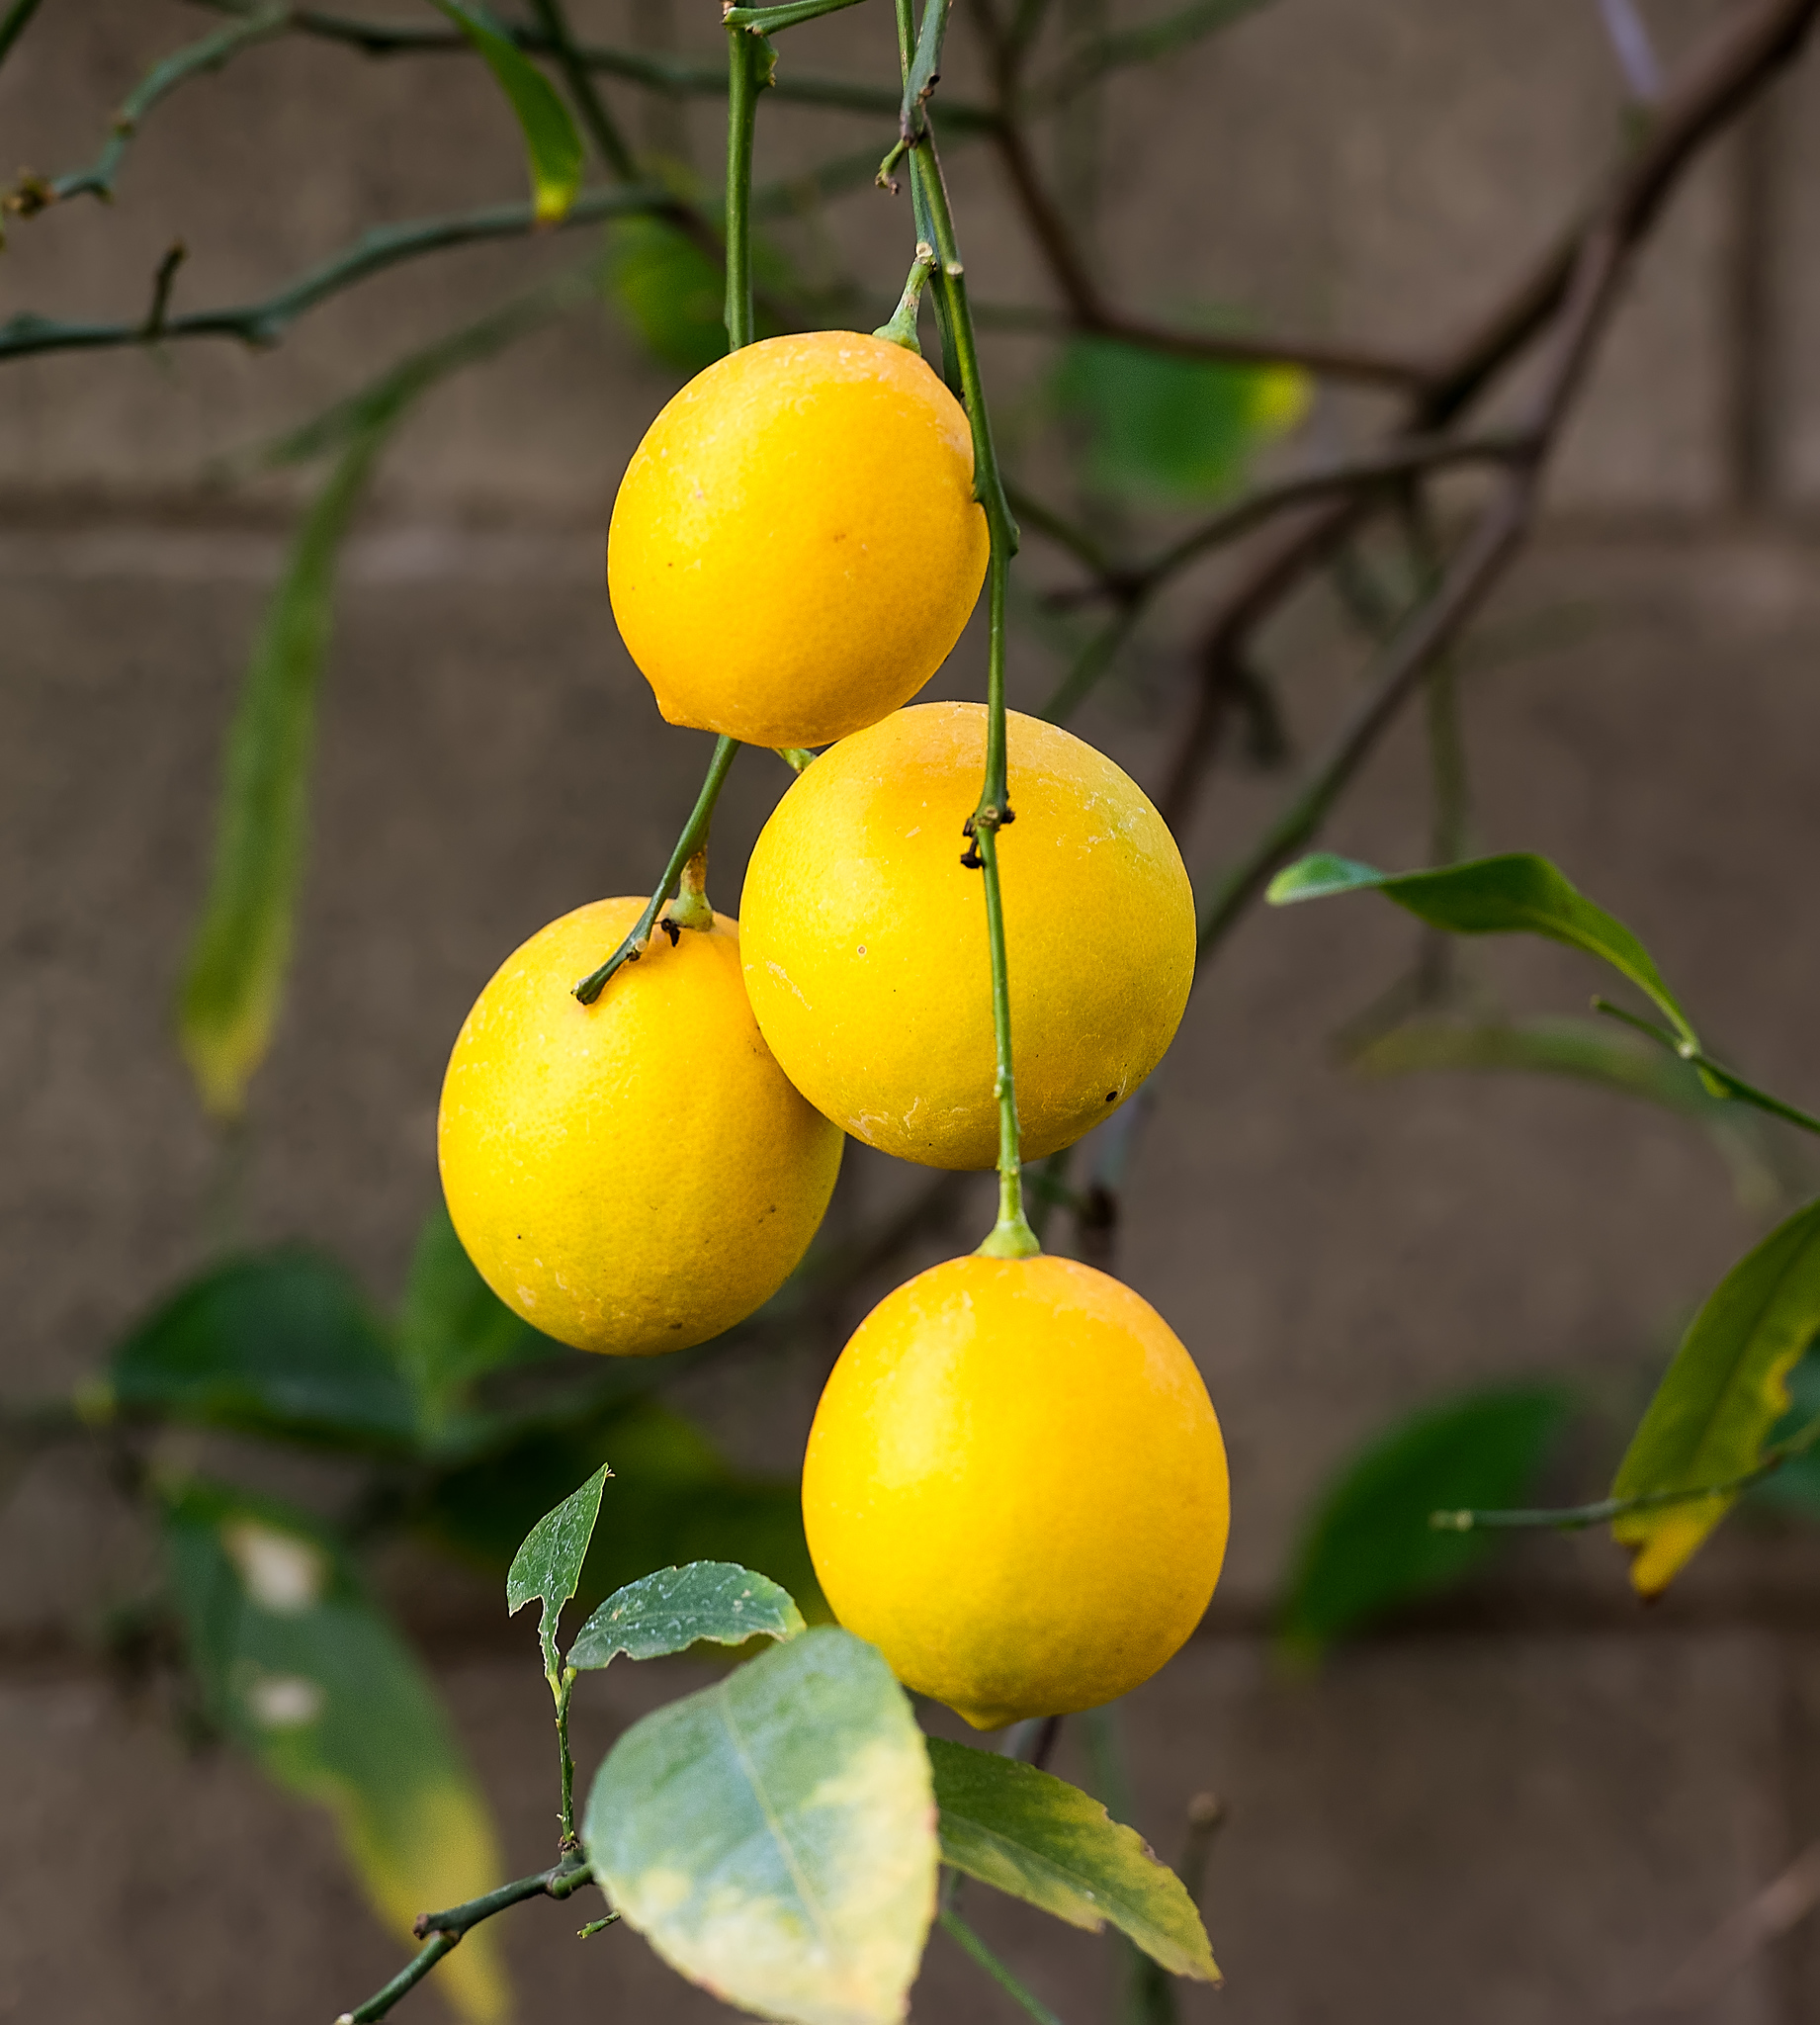 bundle of lemons on the vine-9369